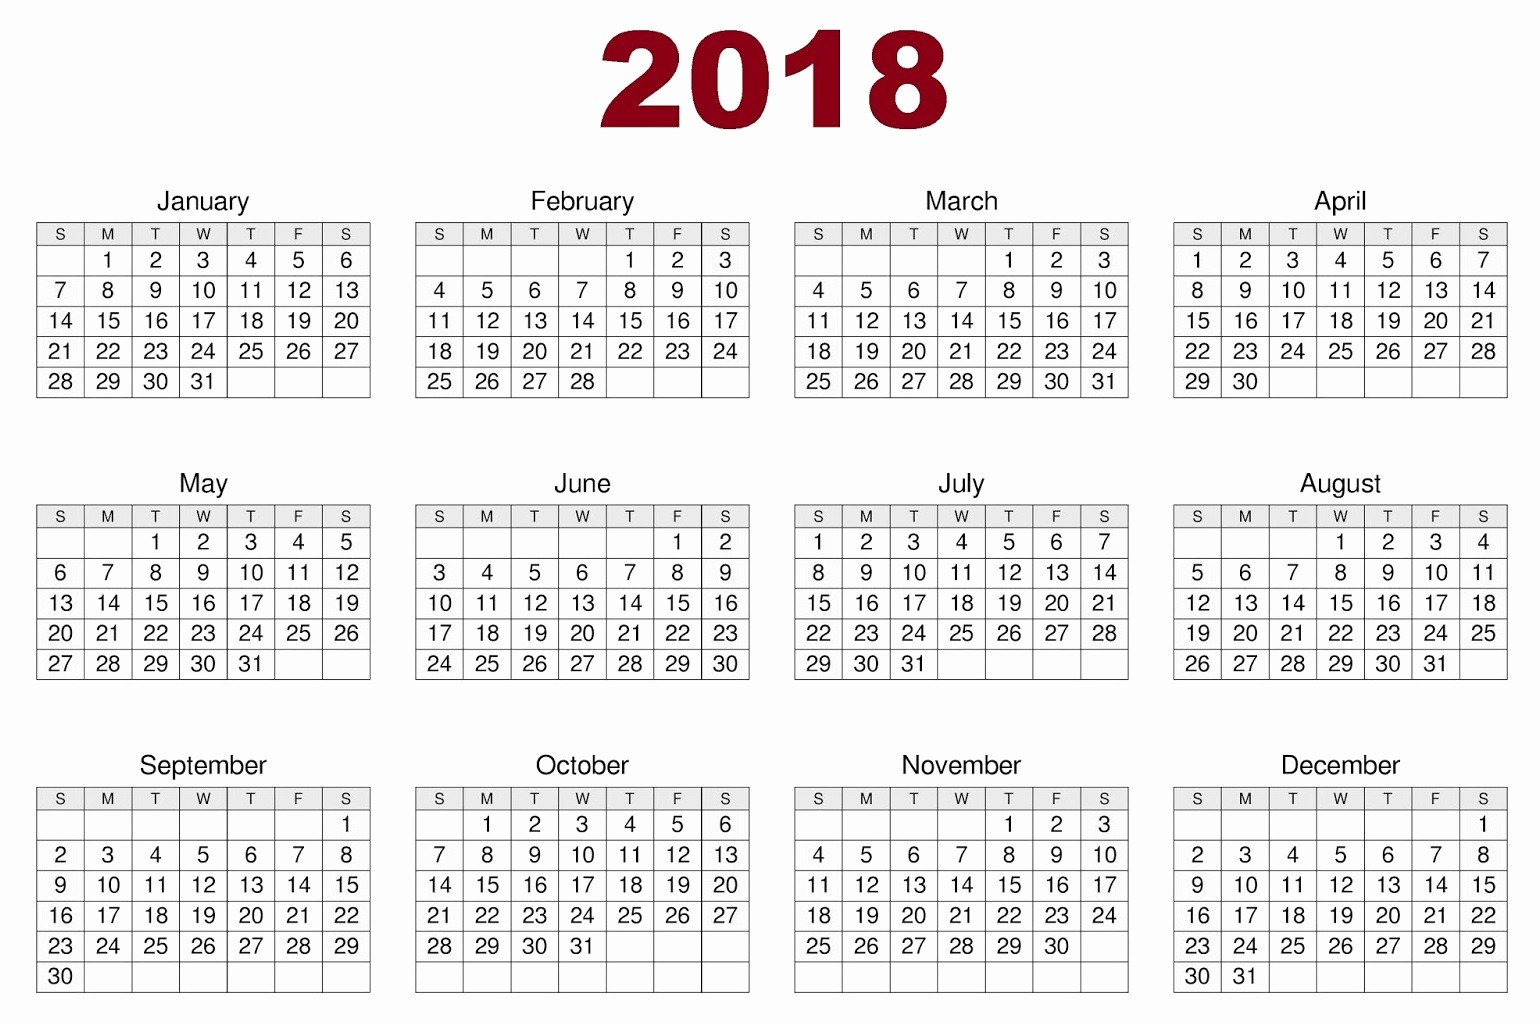 2018 Month by Month Calendar Fresh Download 12 Month Printable Calendar 2018 From January to